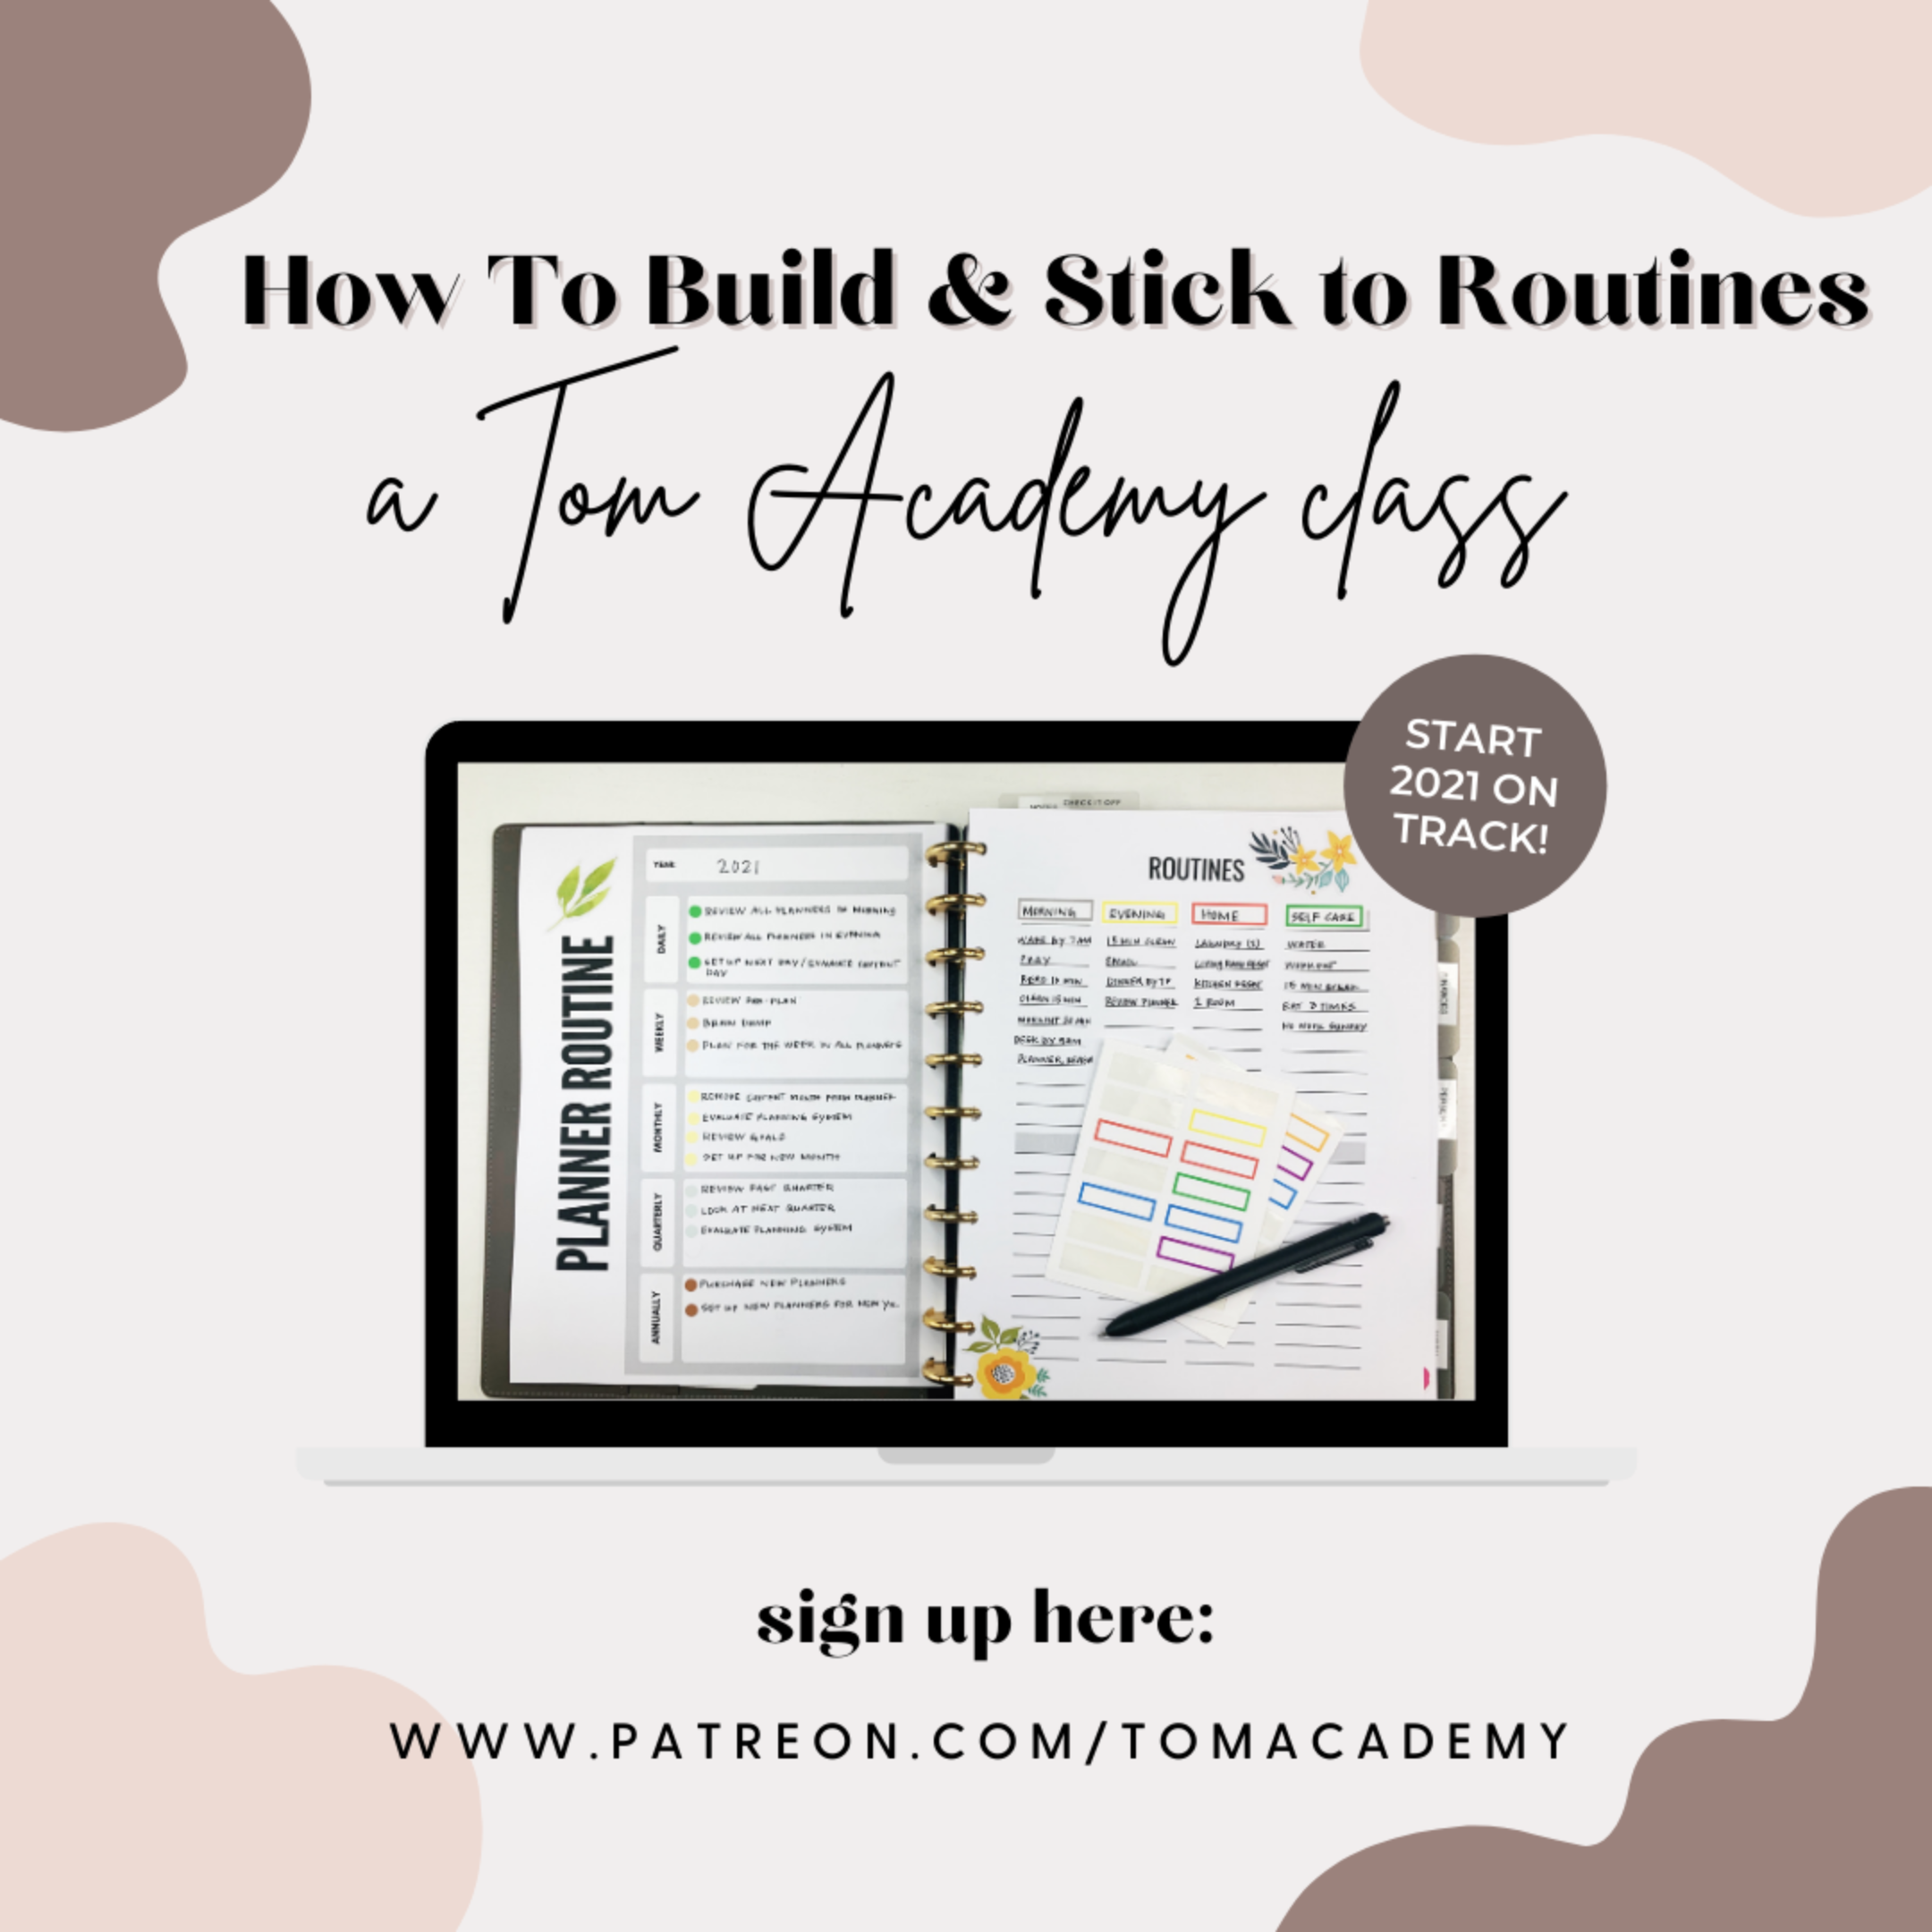 How To Build & Stick With Routines